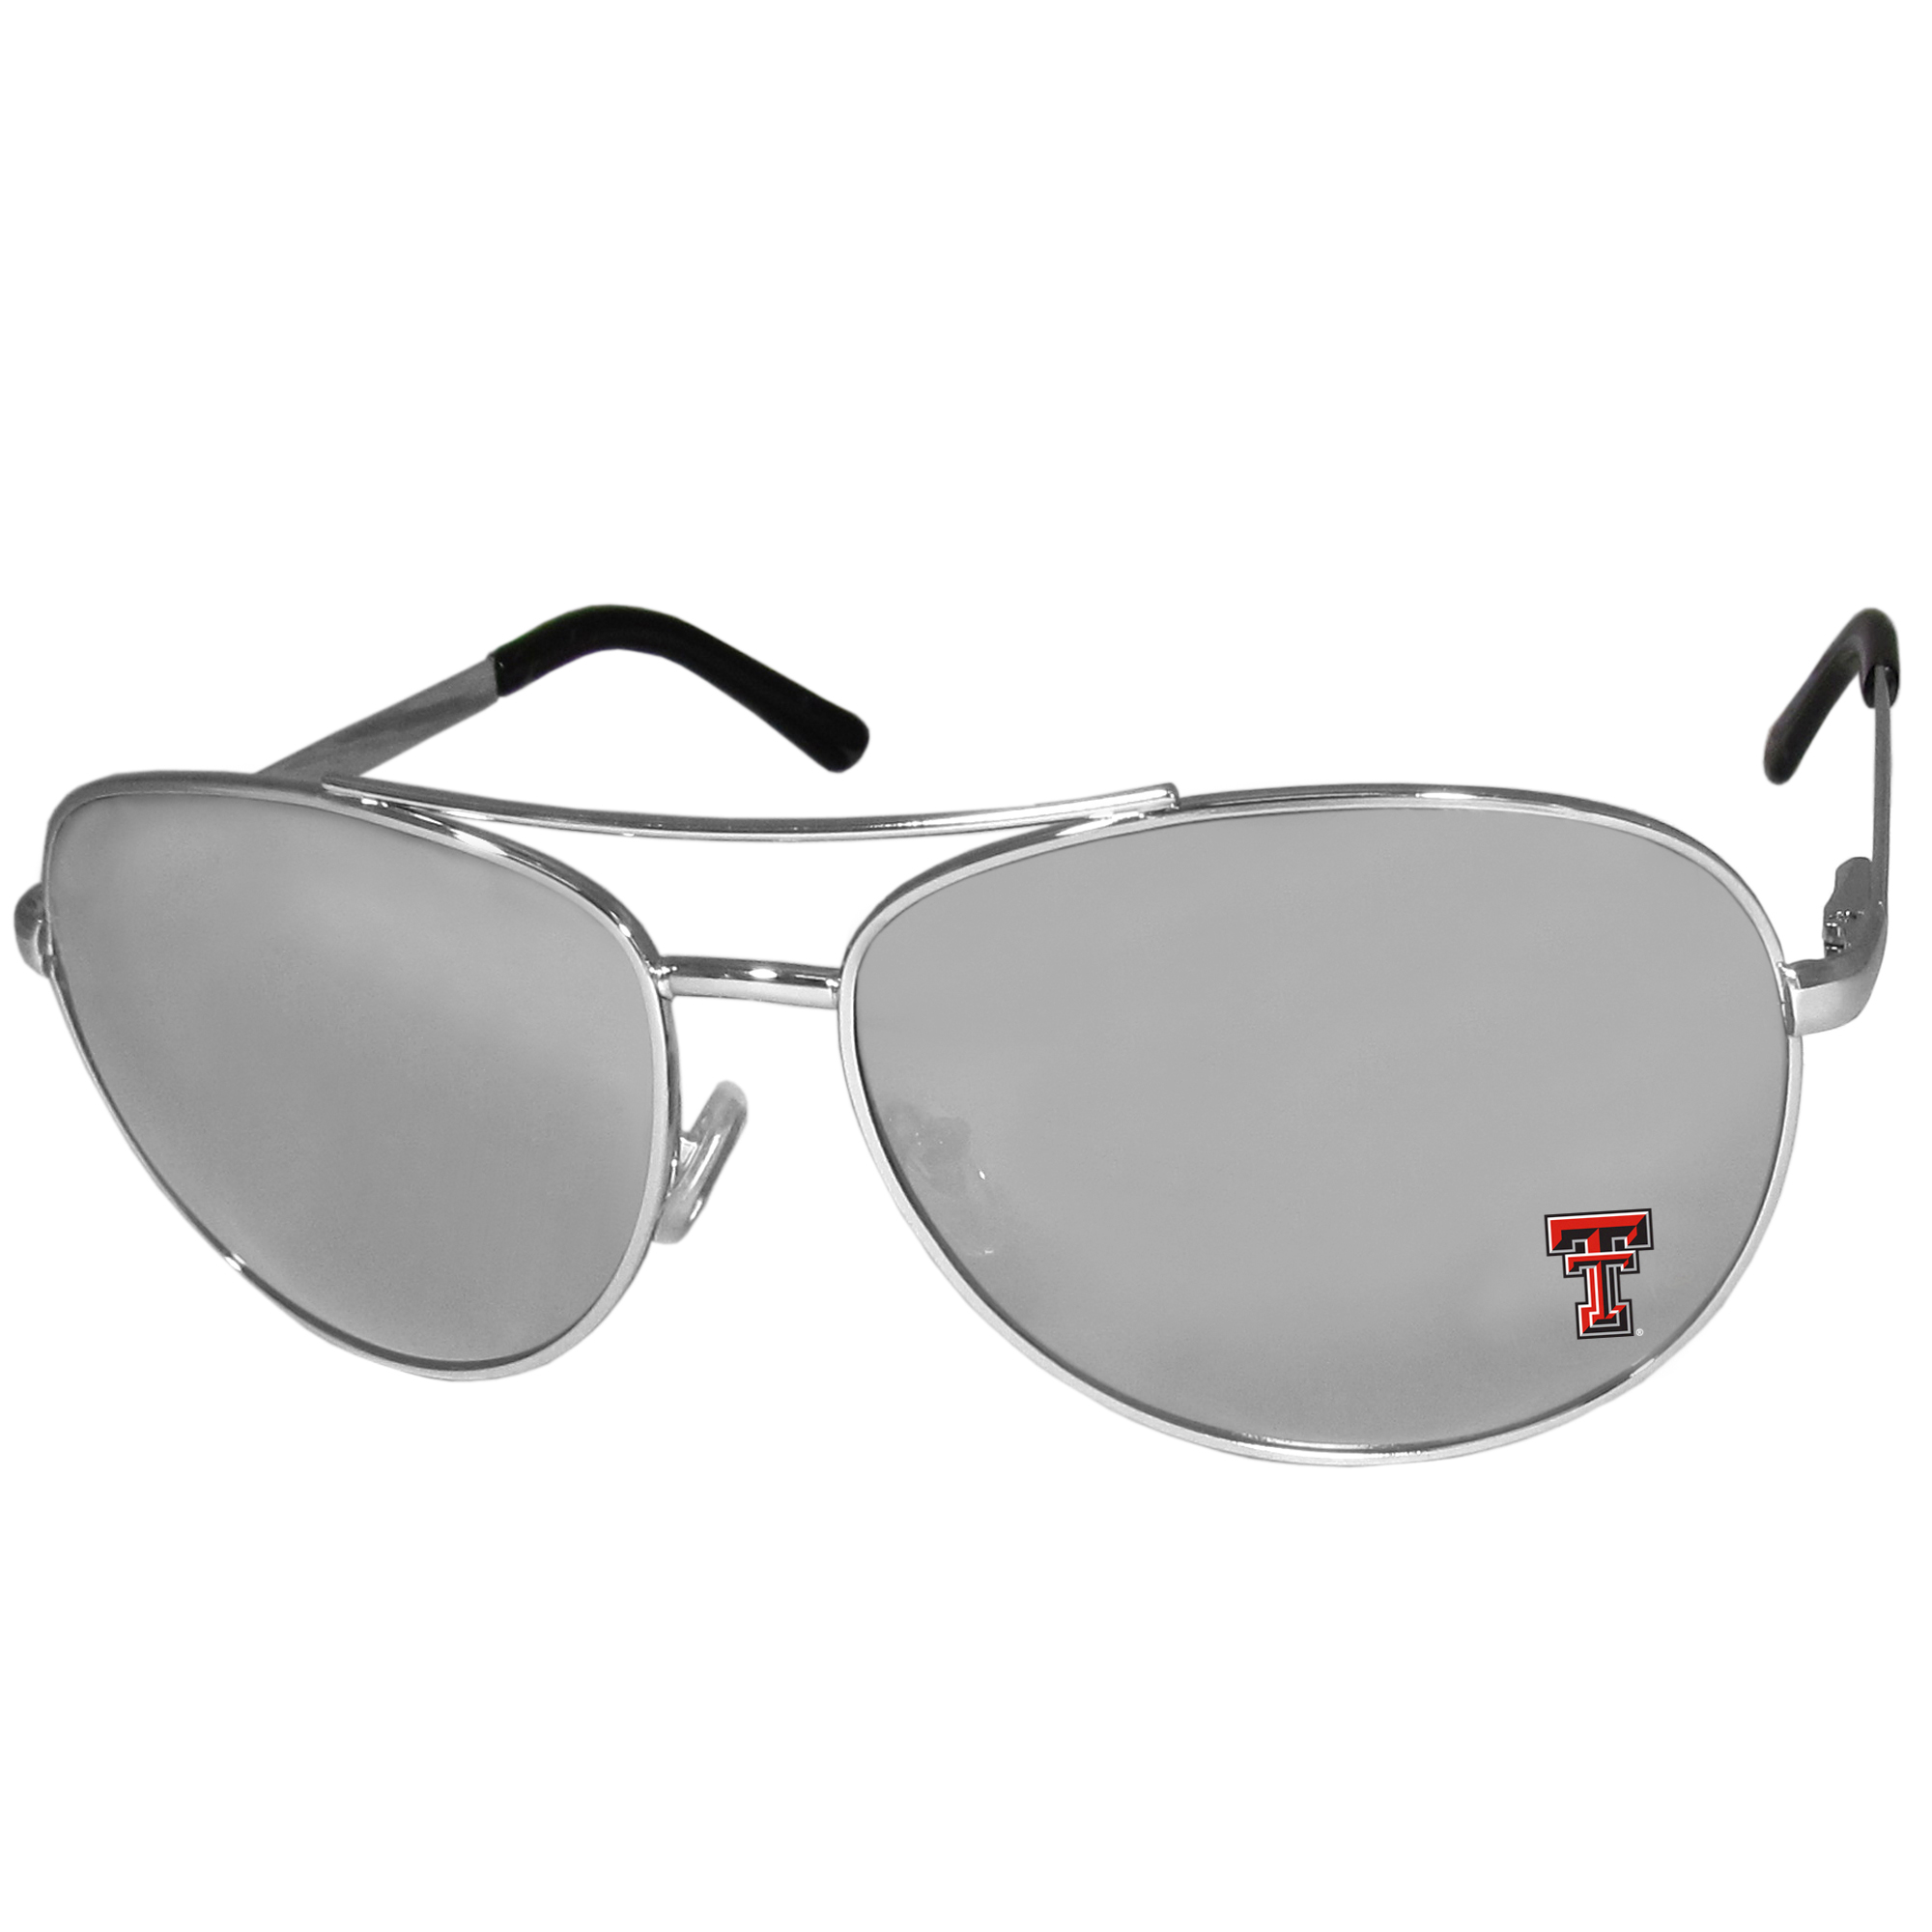 Texas Tech Raiders Aviator Sunglasses - Our aviator sunglasses have the iconic aviator style with mirrored lenses and metal frames. The glasses feature a silk screened Texas Tech Raiders logo in the corner of the lense. 100% UVA/UVB protection.